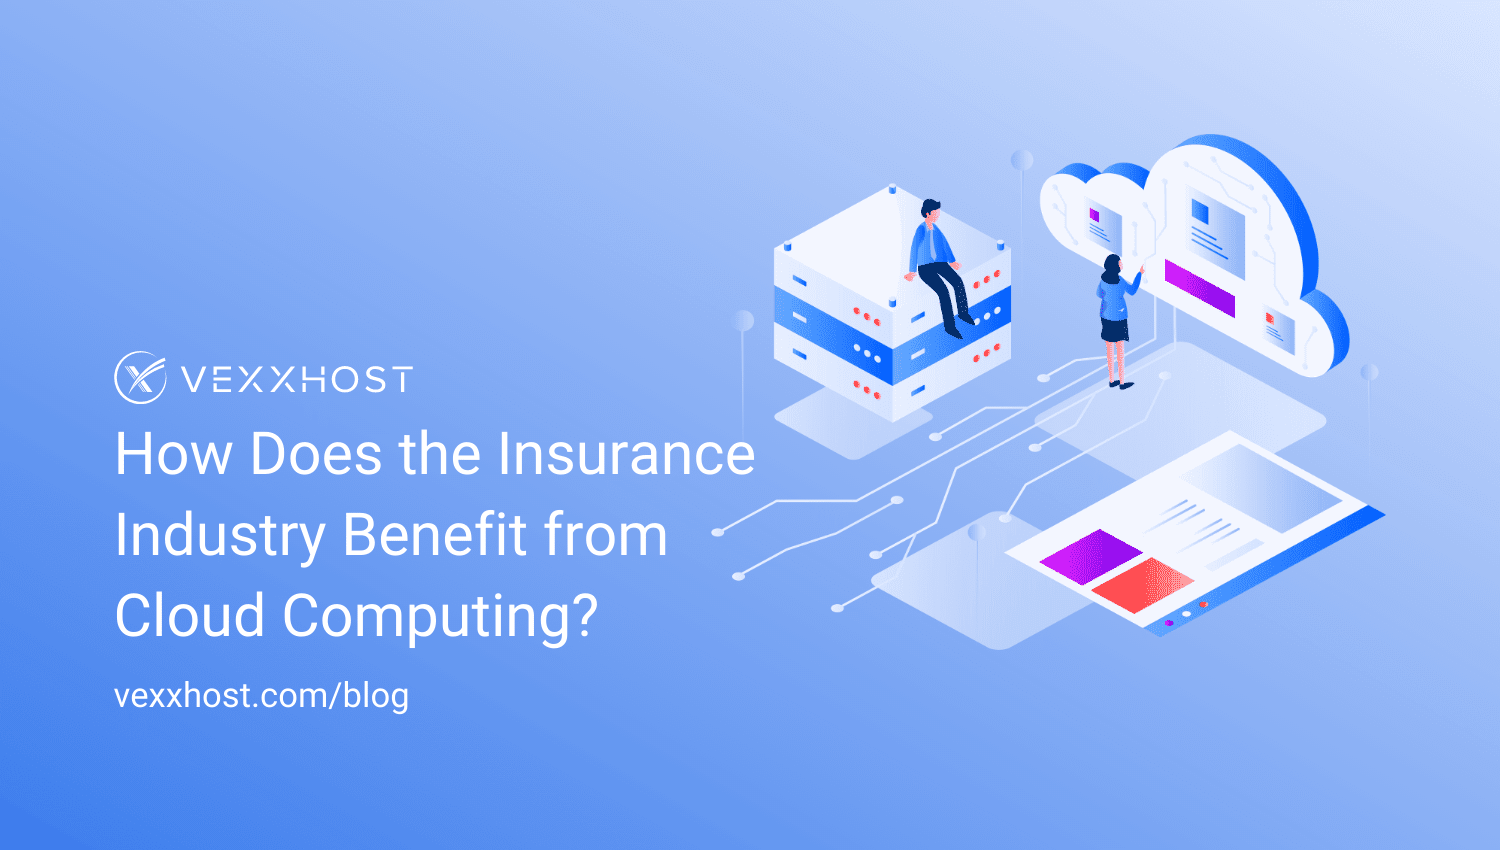 How Does the Insurance Industry Benefit from Cloud Computing